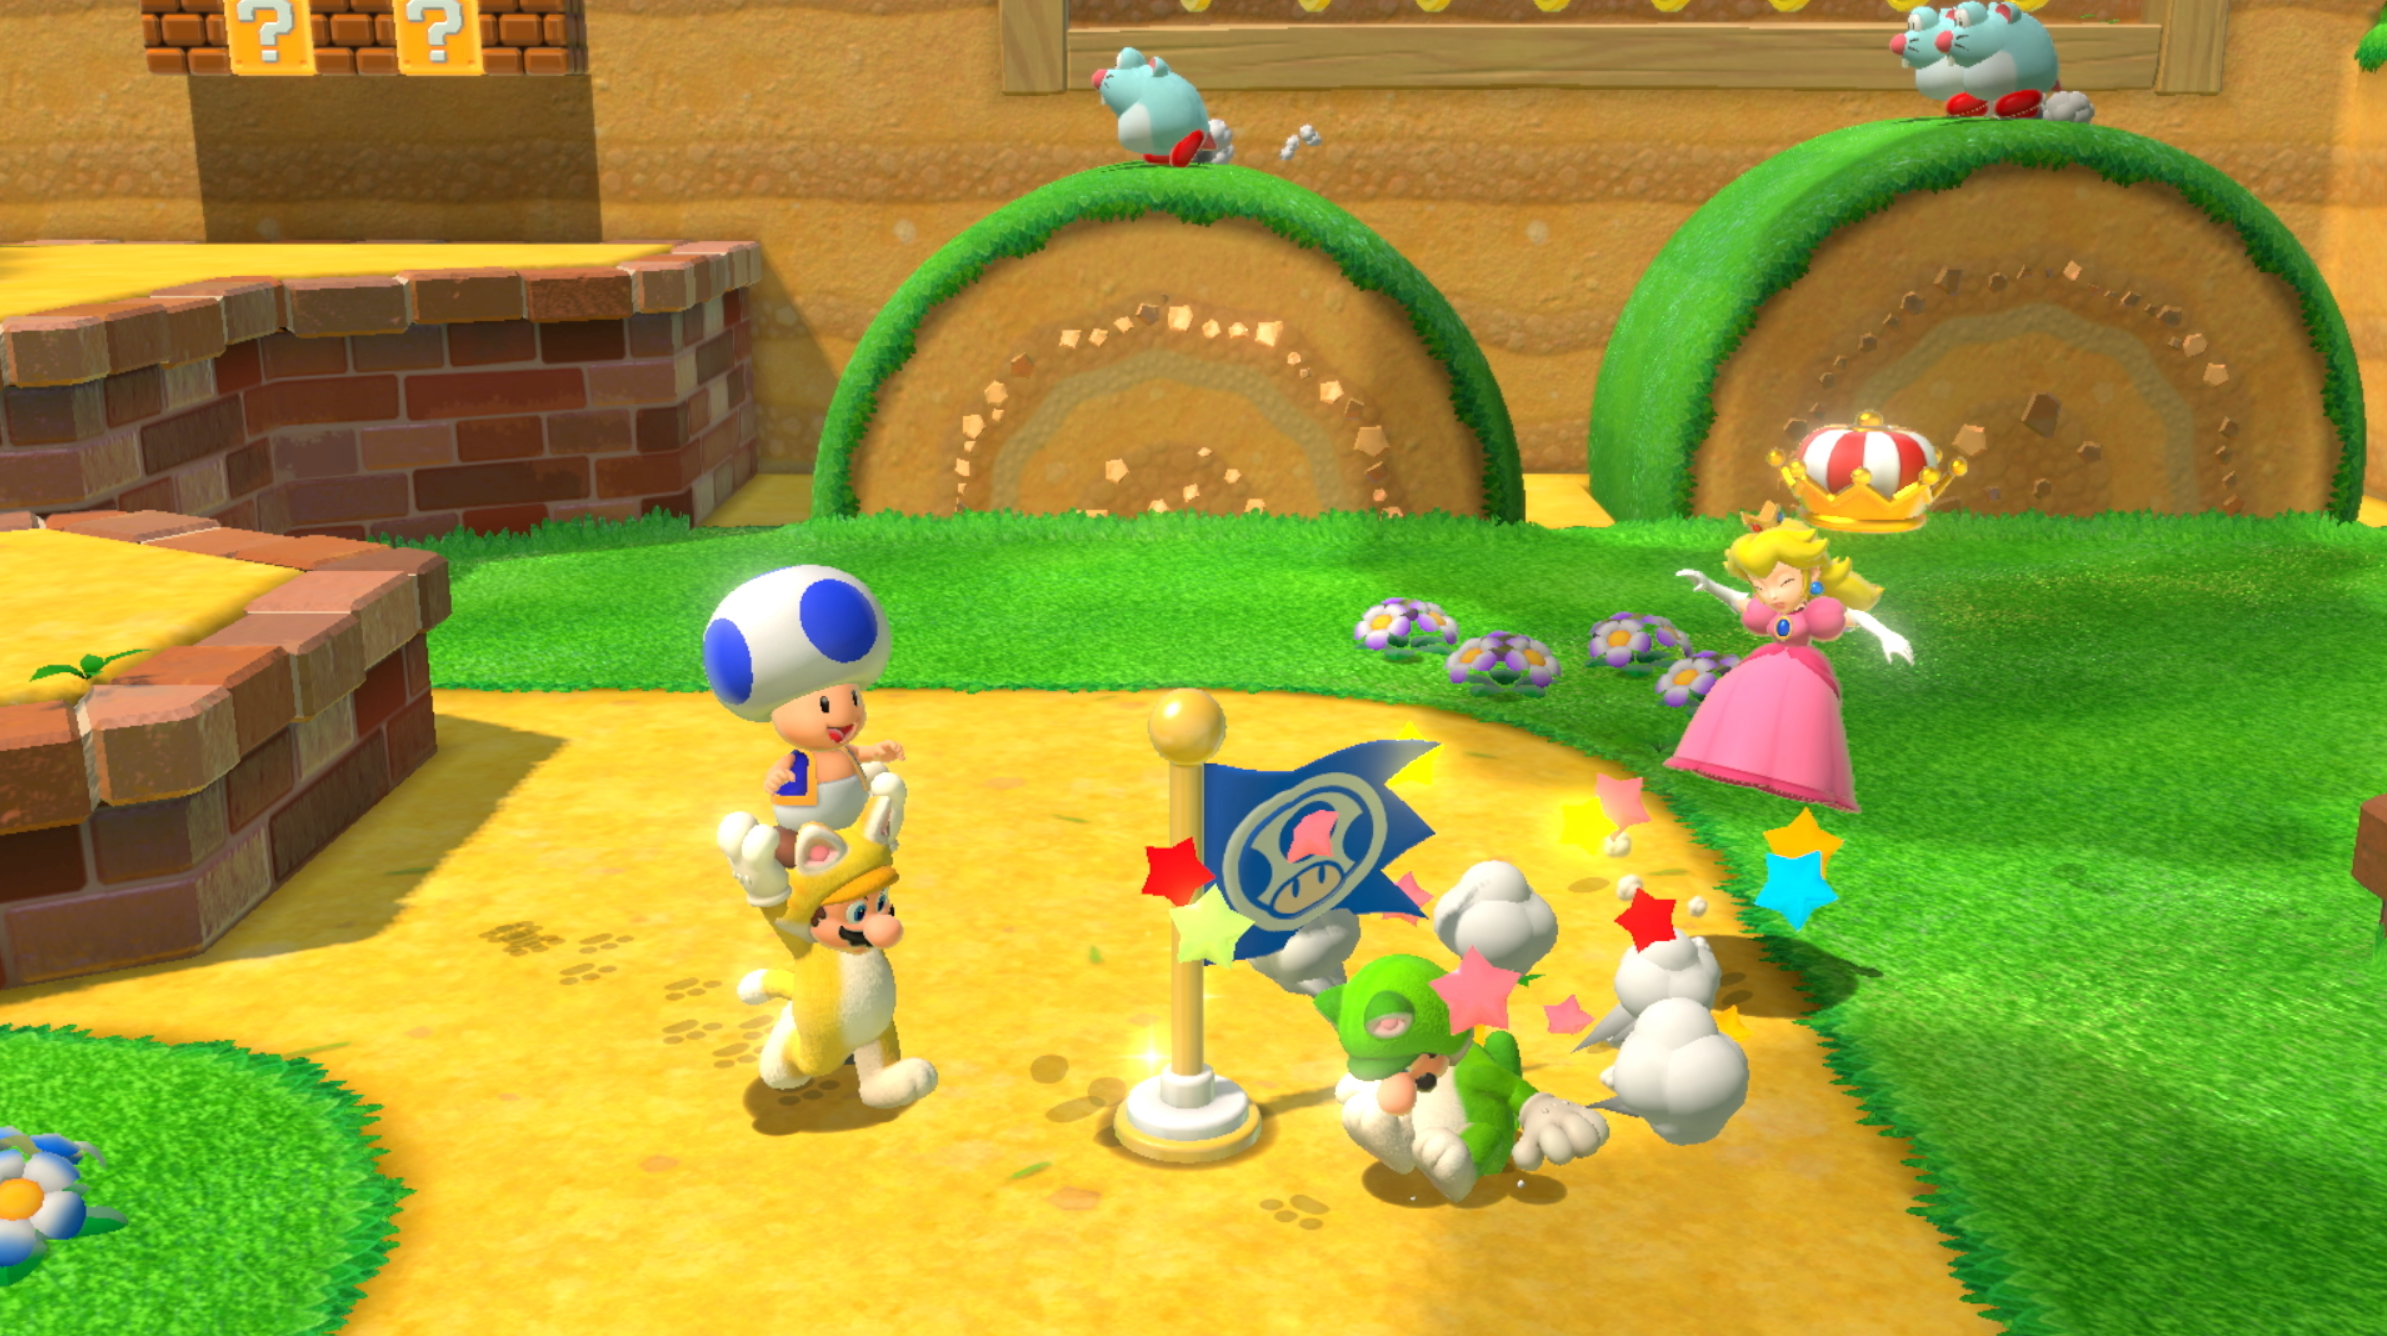 Mario and pals in multiplayer of Super Mario 3D World